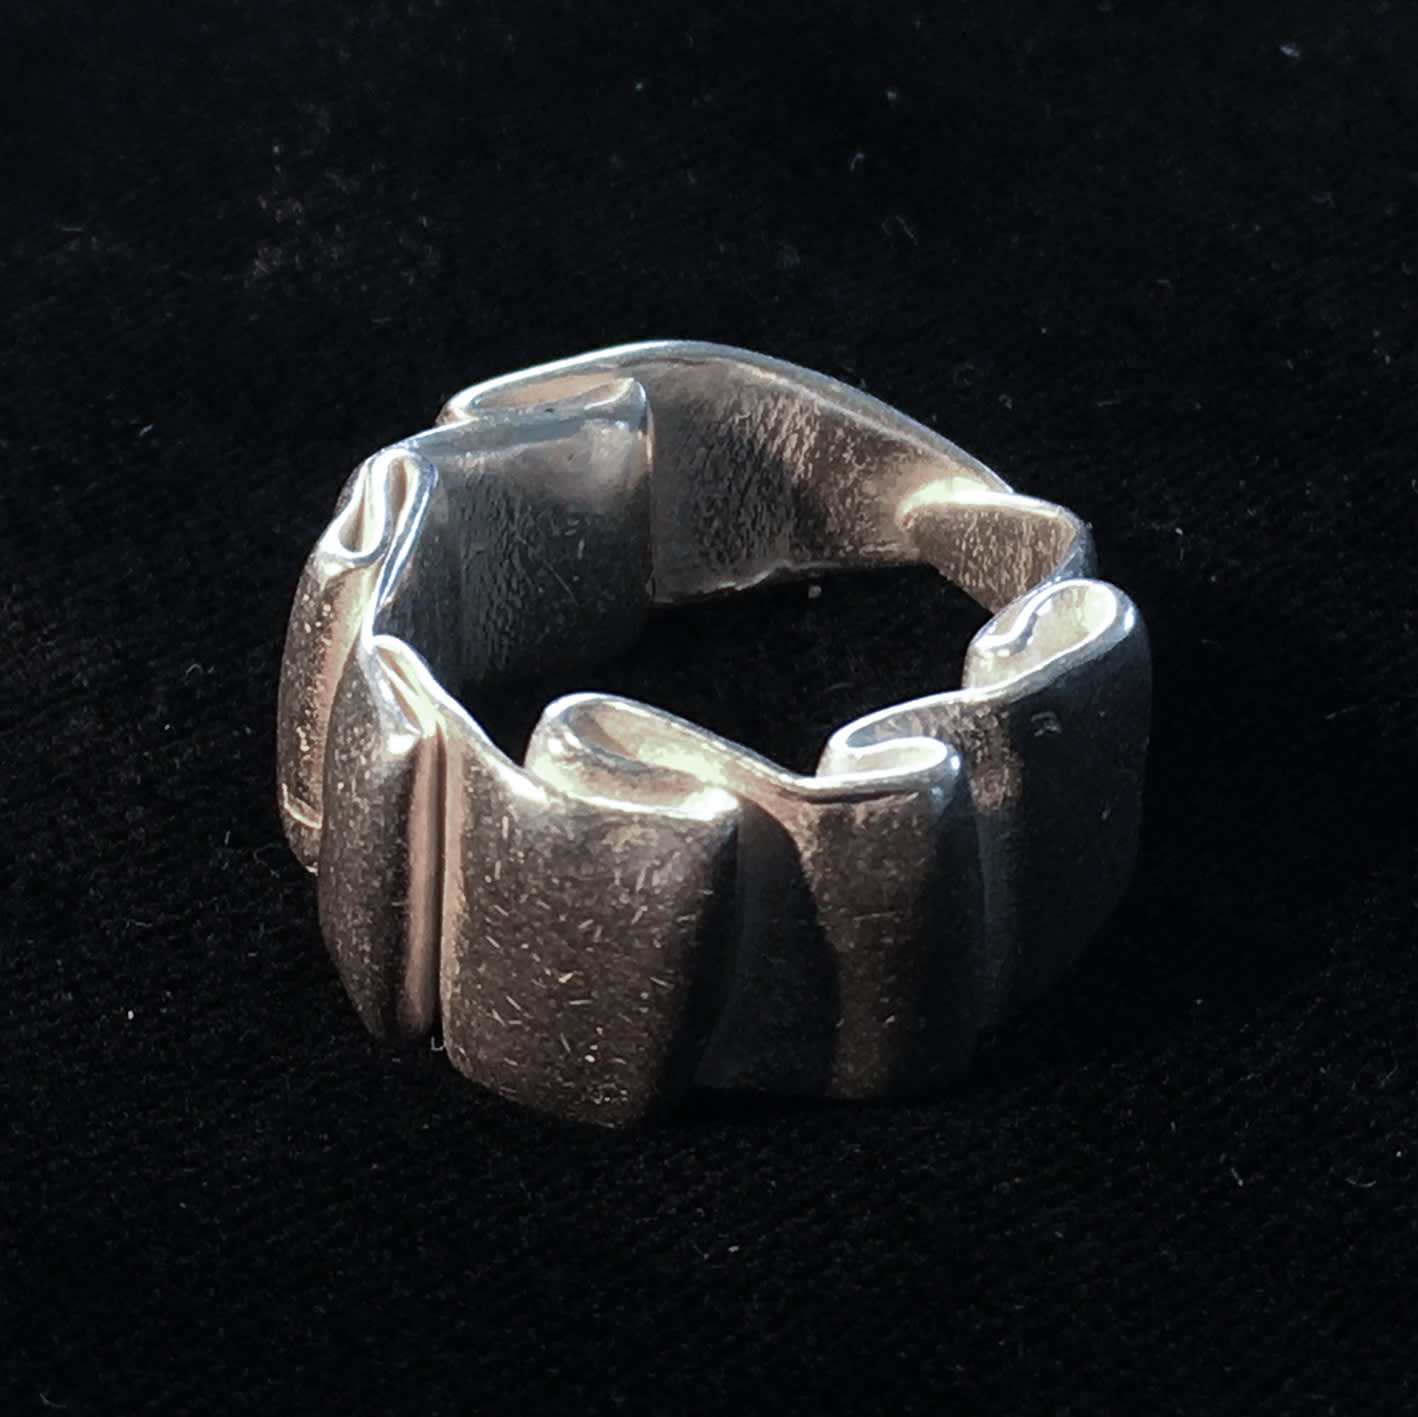 "<span class=""link fancybox-details-link""><a href=""/artists/186-helen-feiler/works/6757-helen-feiler-silver-wave-ring-2019/"">View Detail Page</a></span><div class=""artist""><strong>Helen Feiler</strong></div> <div class=""title""><em>Silver 'Wave' Ring</em>, 2019</div> <div class=""medium"">silver</div><div class=""price"">£175.00</div><div class=""copyright_line"">Own Art: £17.50 x 10 monthly payments</div>"